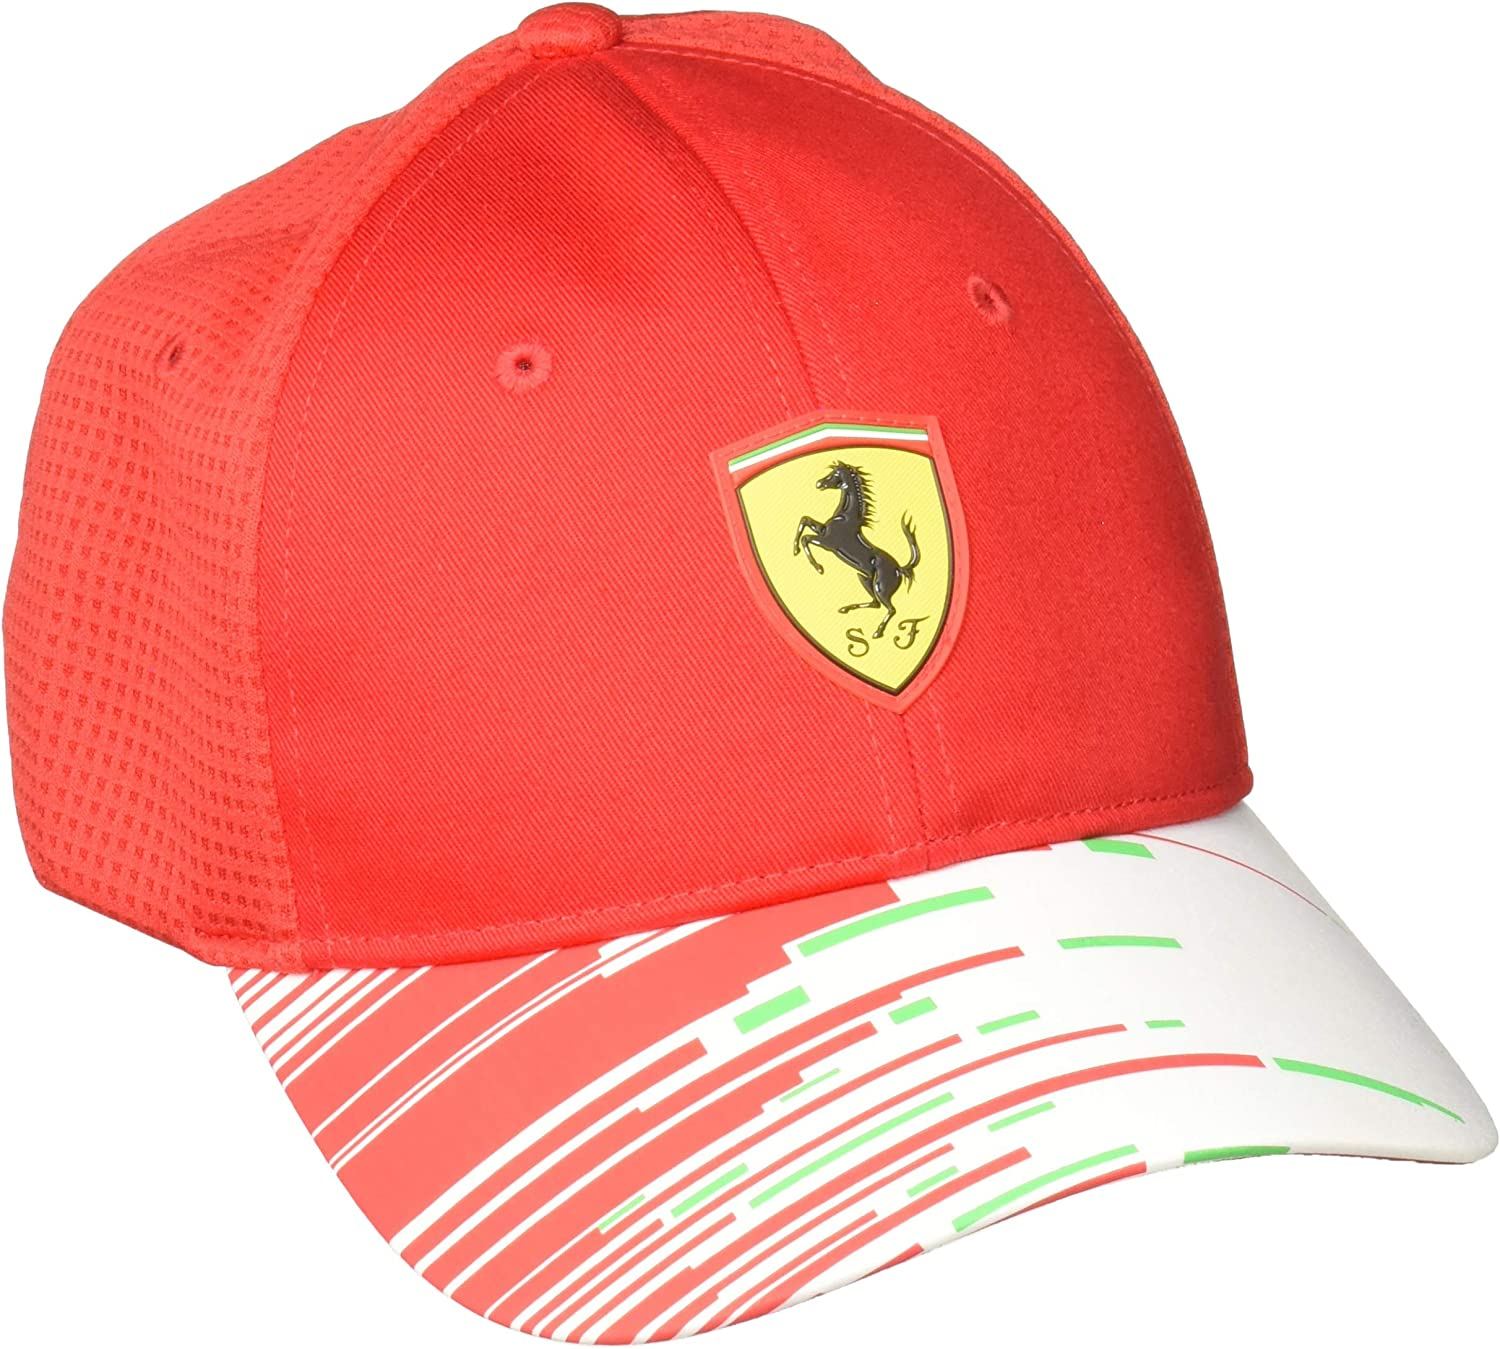 FERRARI F1 Ferrari Team 2018 – Gorra para Adultos, Color Rojo ...